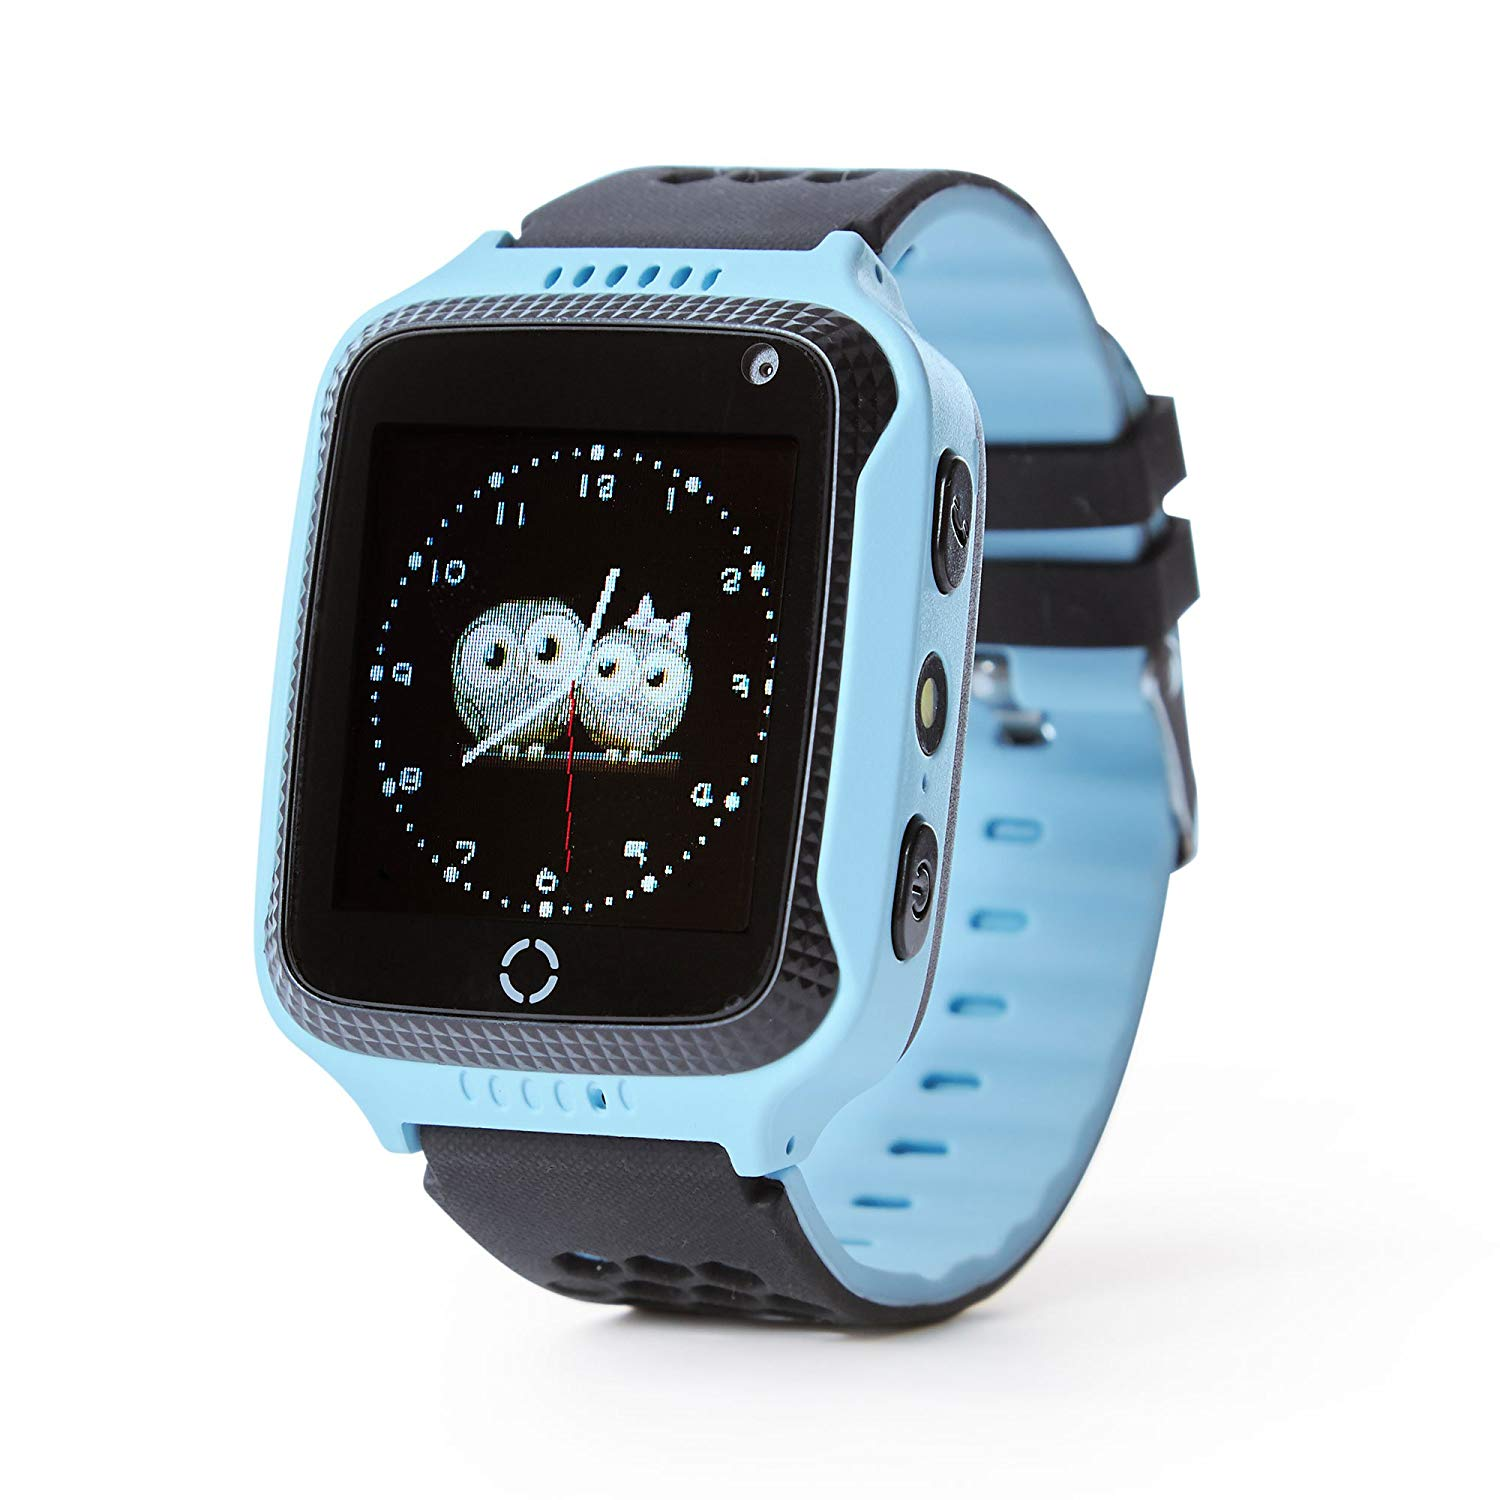 Smart Watch For Kids Boys Girls Fitness Baby Phone Touch Screen With GPS Tracking Tracker Children SOS Call Camera Blue Pink lemado v12 gps sport smart watch for children 1 22 touch screen support 32g tf card vibration sos kids safe tracker with camera